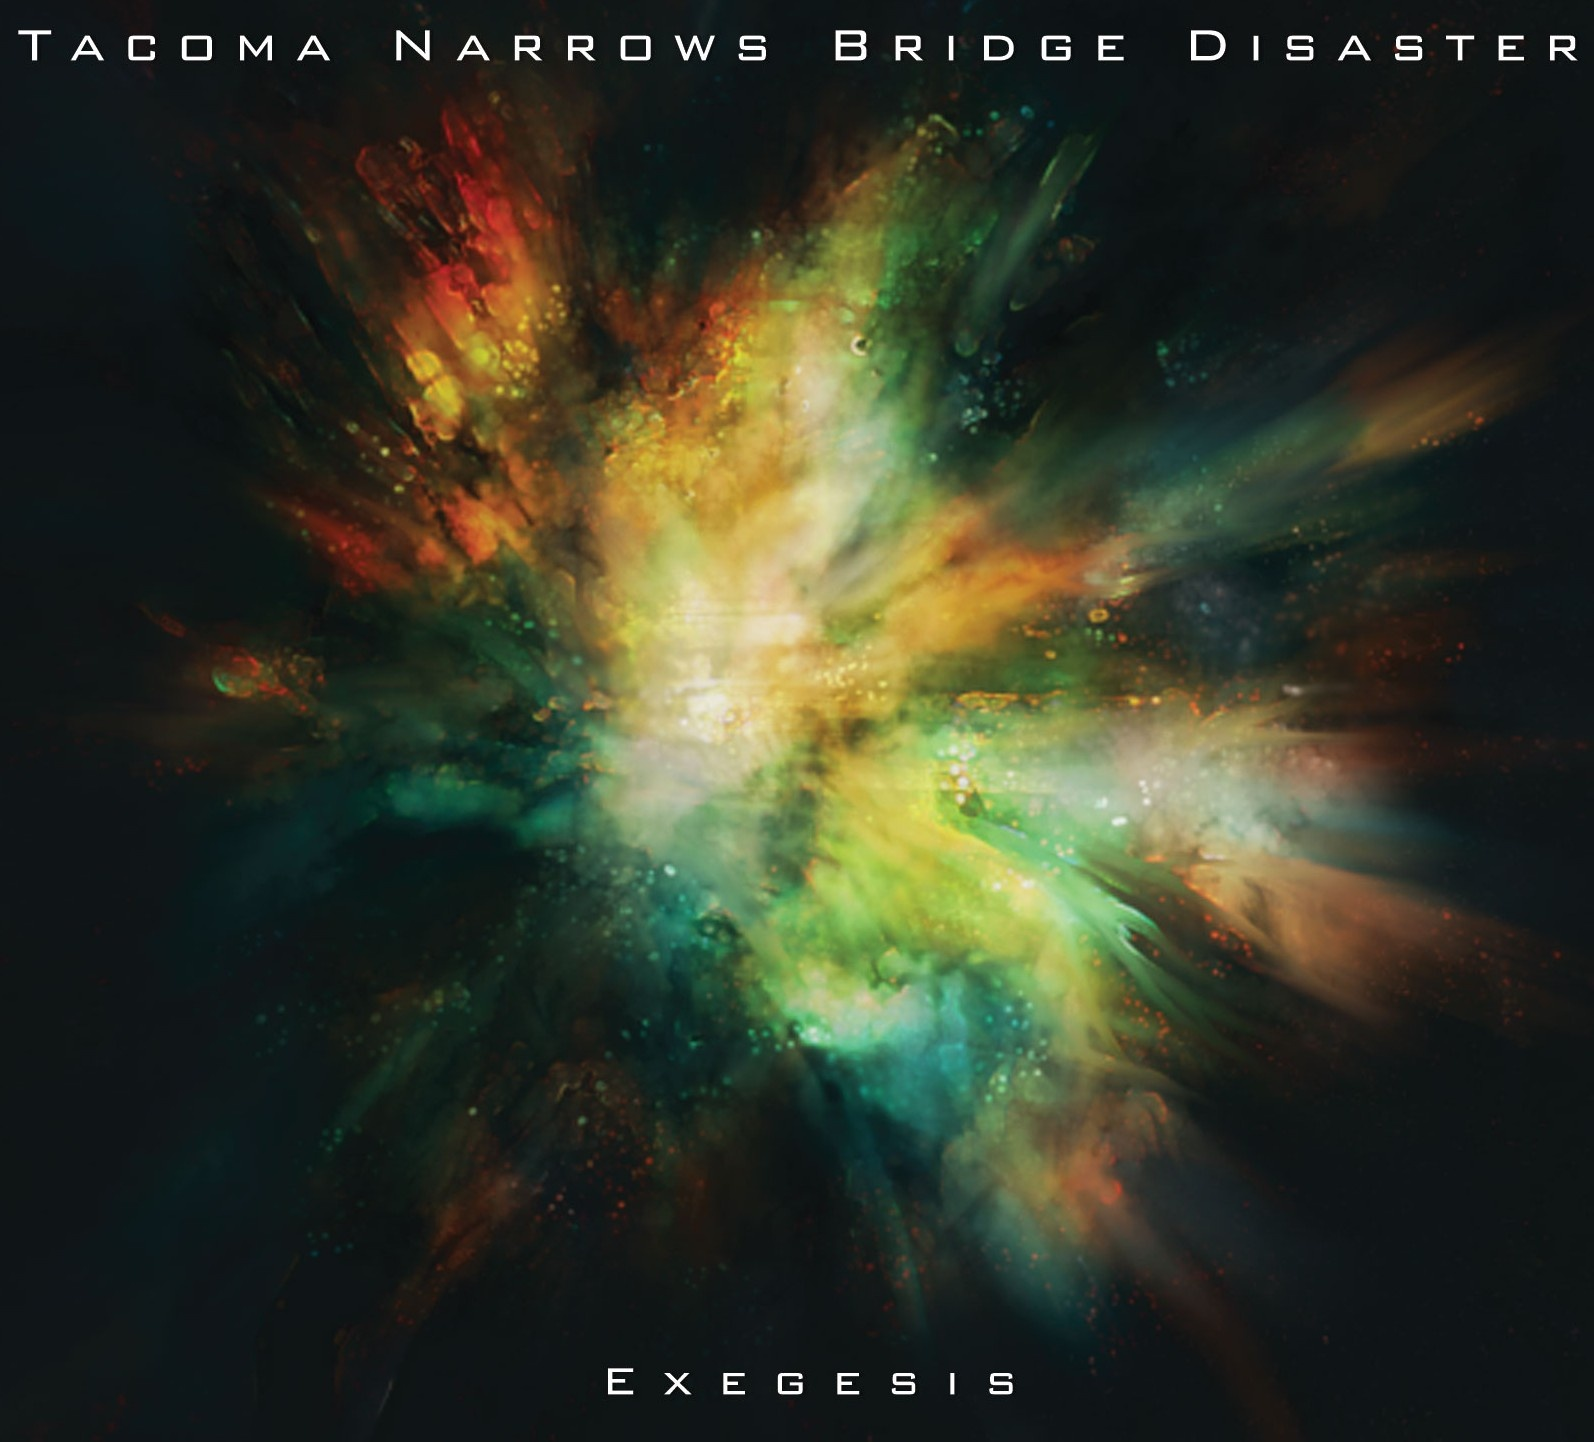 The Sludgelord February 2012 Storm Electronica April Tacoma Narrows Bridge Disaster Exegesis Review